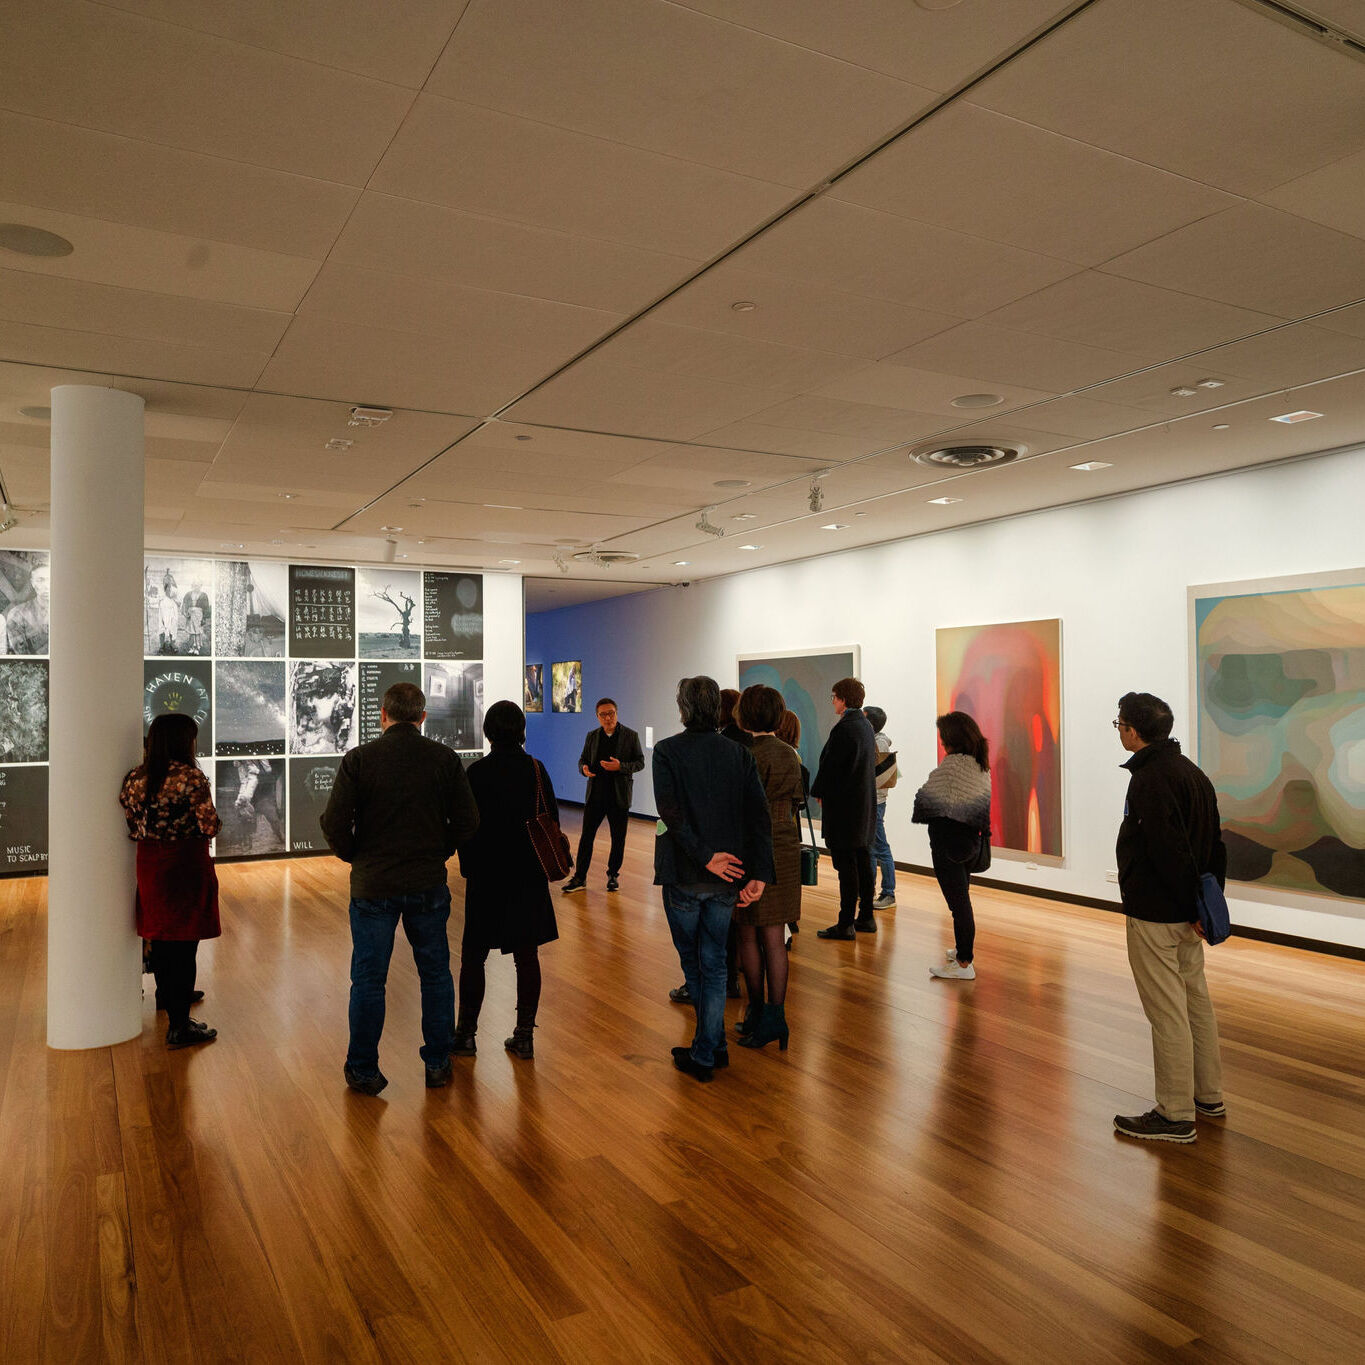 Exhibition opening at Town Hall Gallery for 'The Lives of Celestials' by John Young, displayed 31 August - 20 October 2019. Photograph by ImagePlay